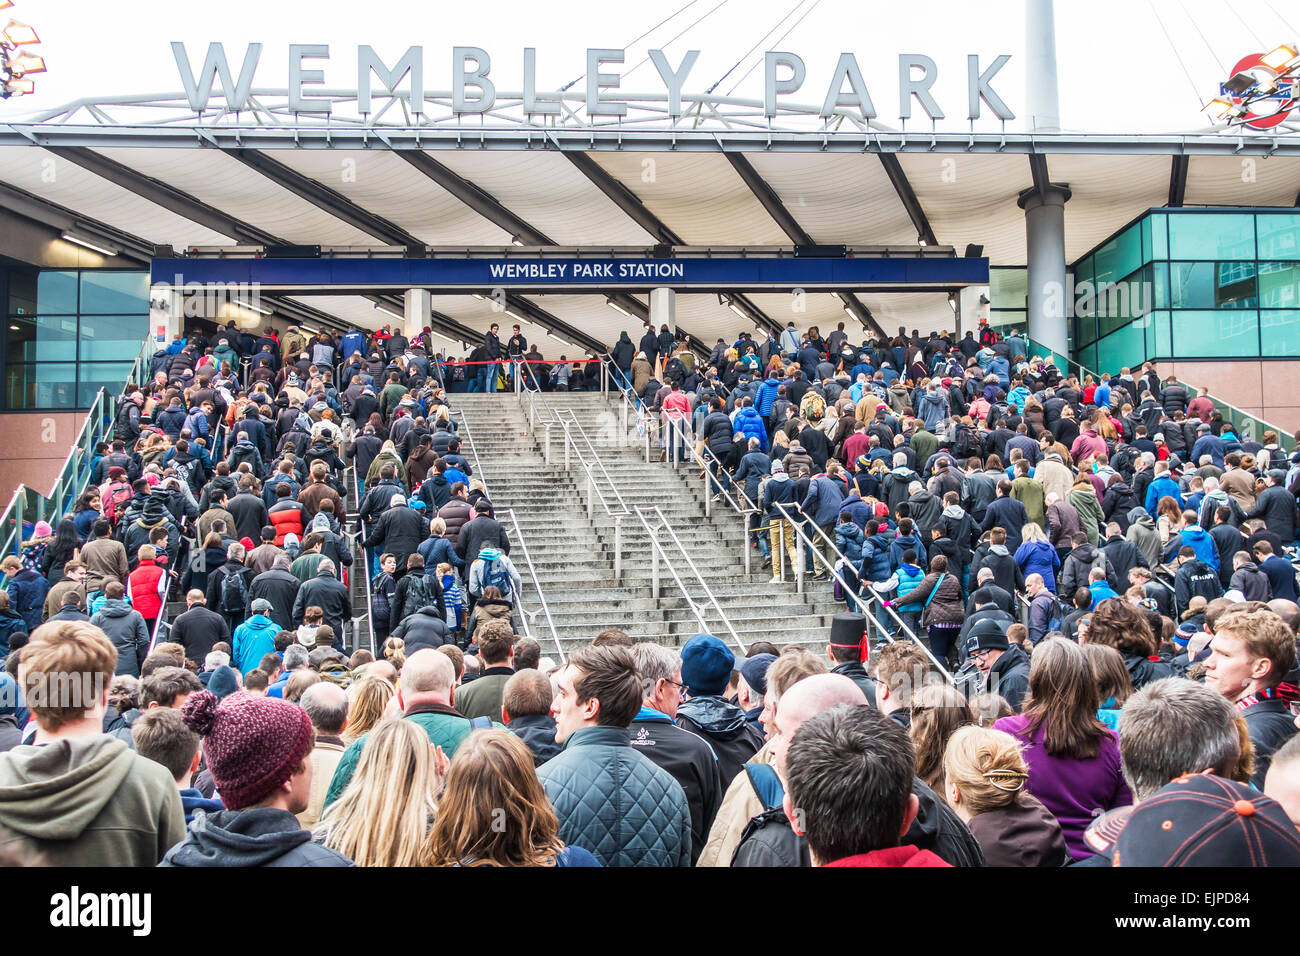 Large Crowd heading for tube trains after rugby game at Wembley Stadium. Wembley Park Station - Stock Image